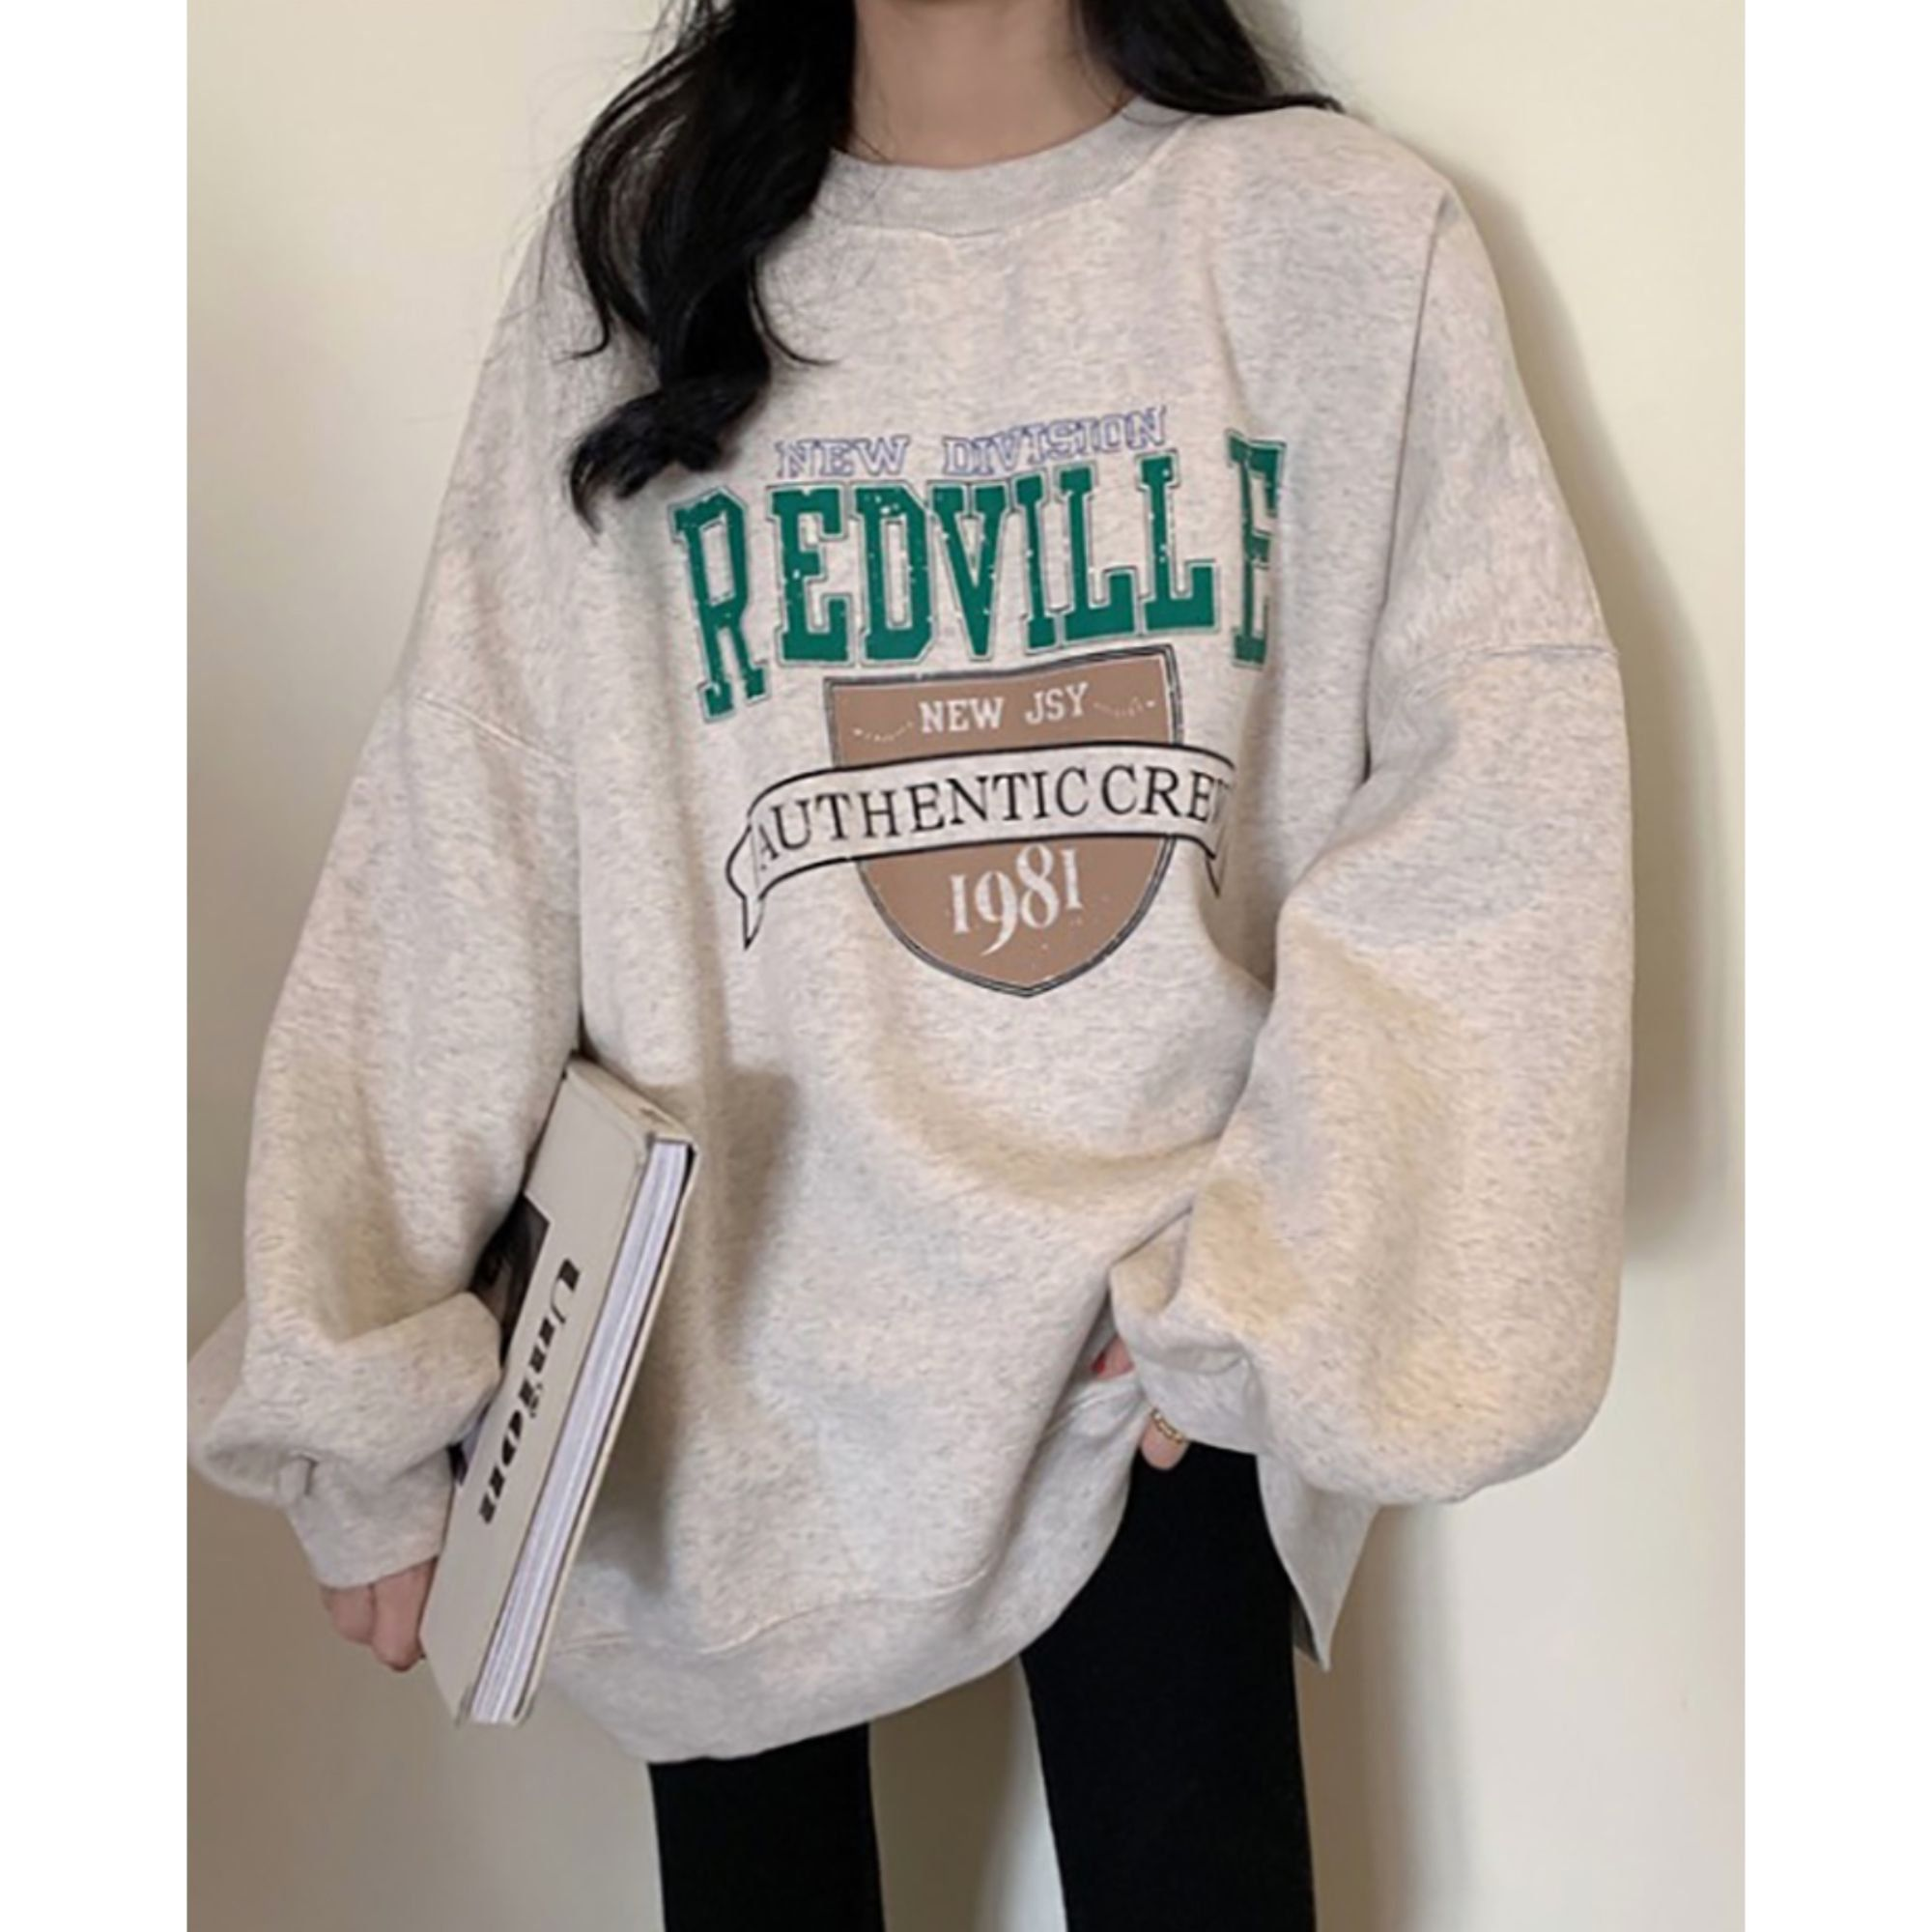 Redville Authentic Crew Oversized Sweatshirt Fleece Lined Korean Fashion Retro 90s Streetwear Winter Pullover In 2021 Oversized Outfit Cute Casual Outfits Retro Outfits [ 2000 x 2000 Pixel ]